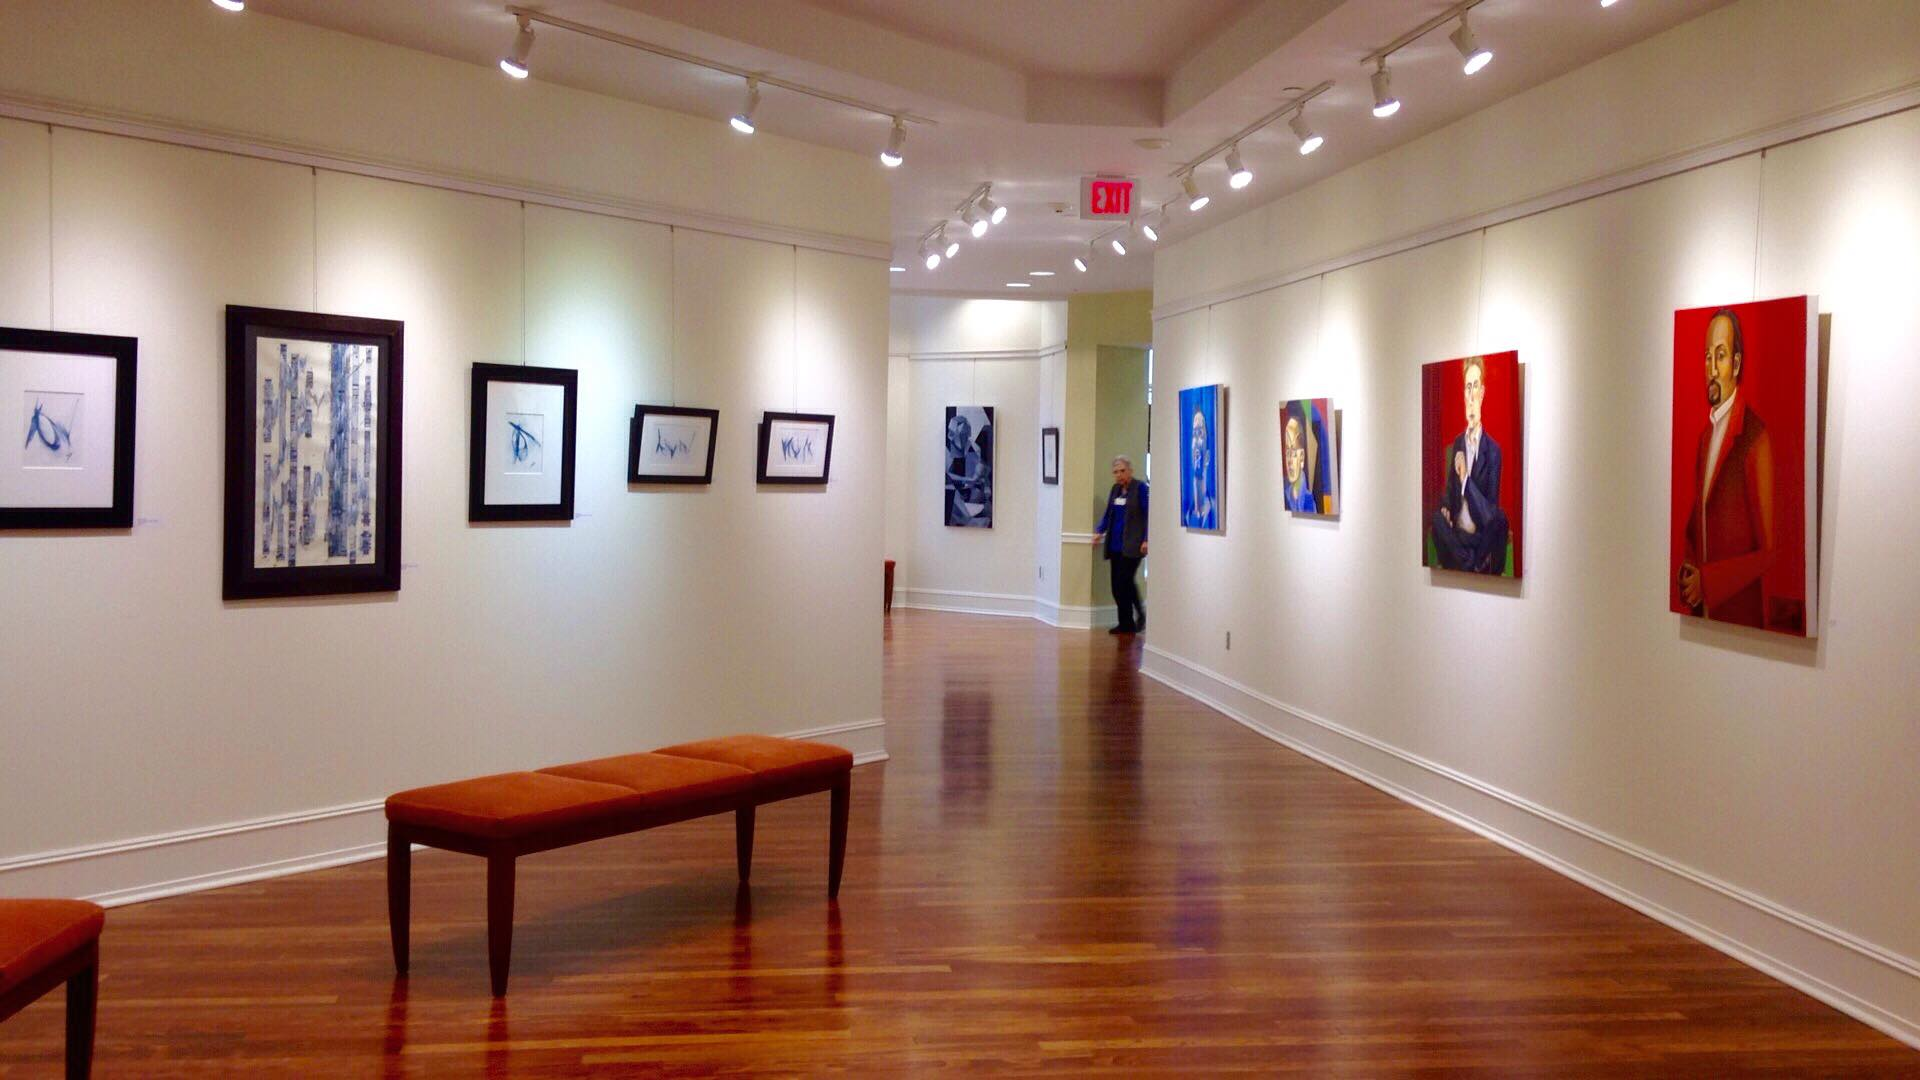 Britt's show at the Crossroad's Gallery at Goodwin House.  Photo by Britt Conley